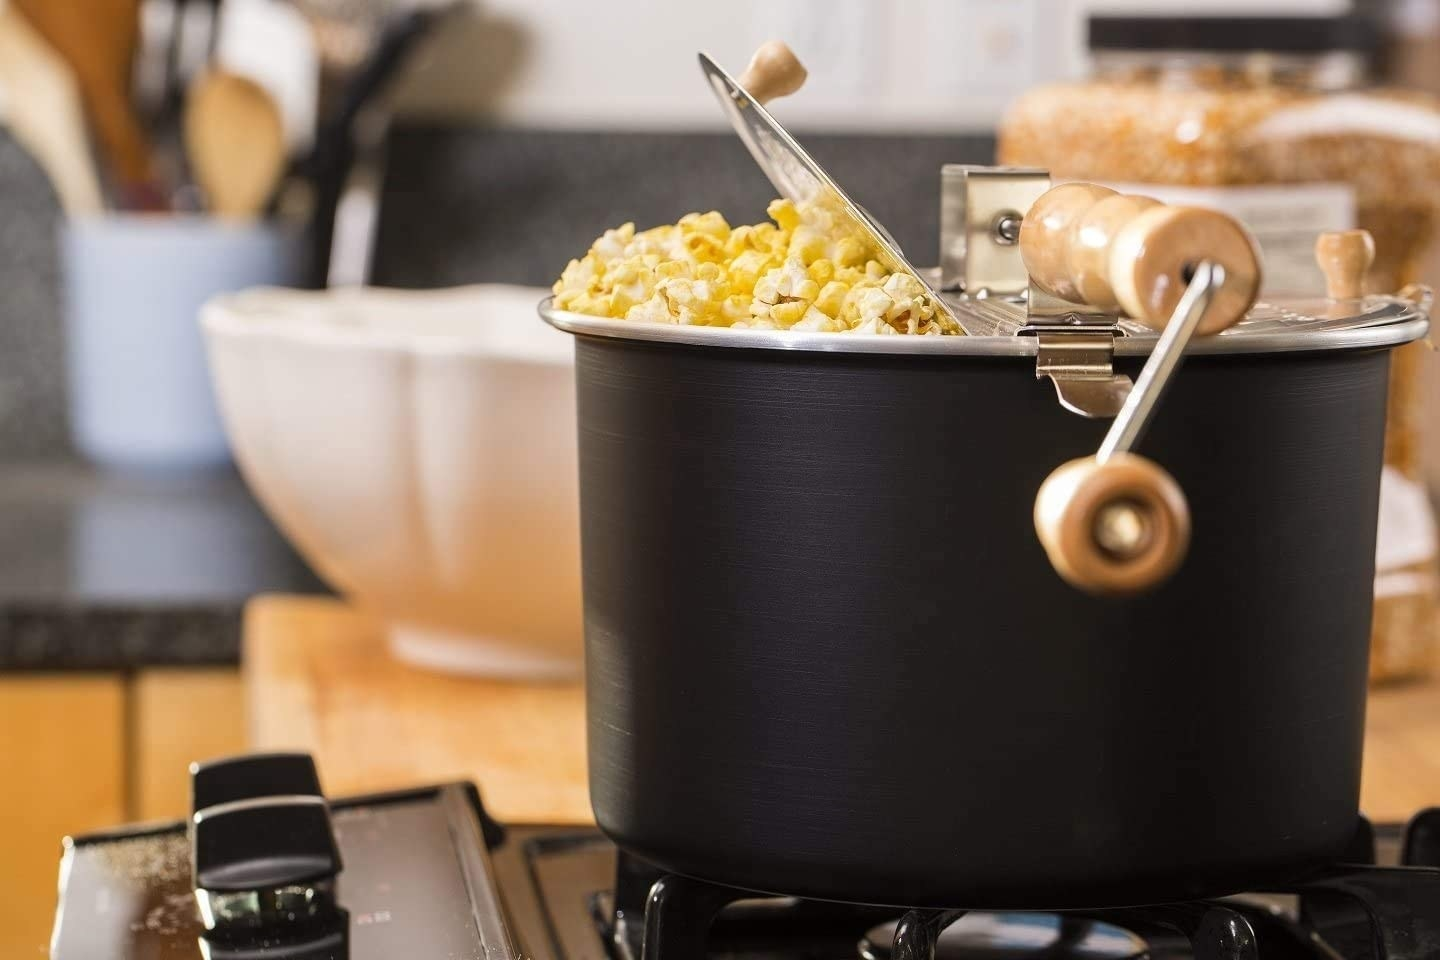 The popper, which is a black pot with a silver lid and wooden hand crank, on a stove